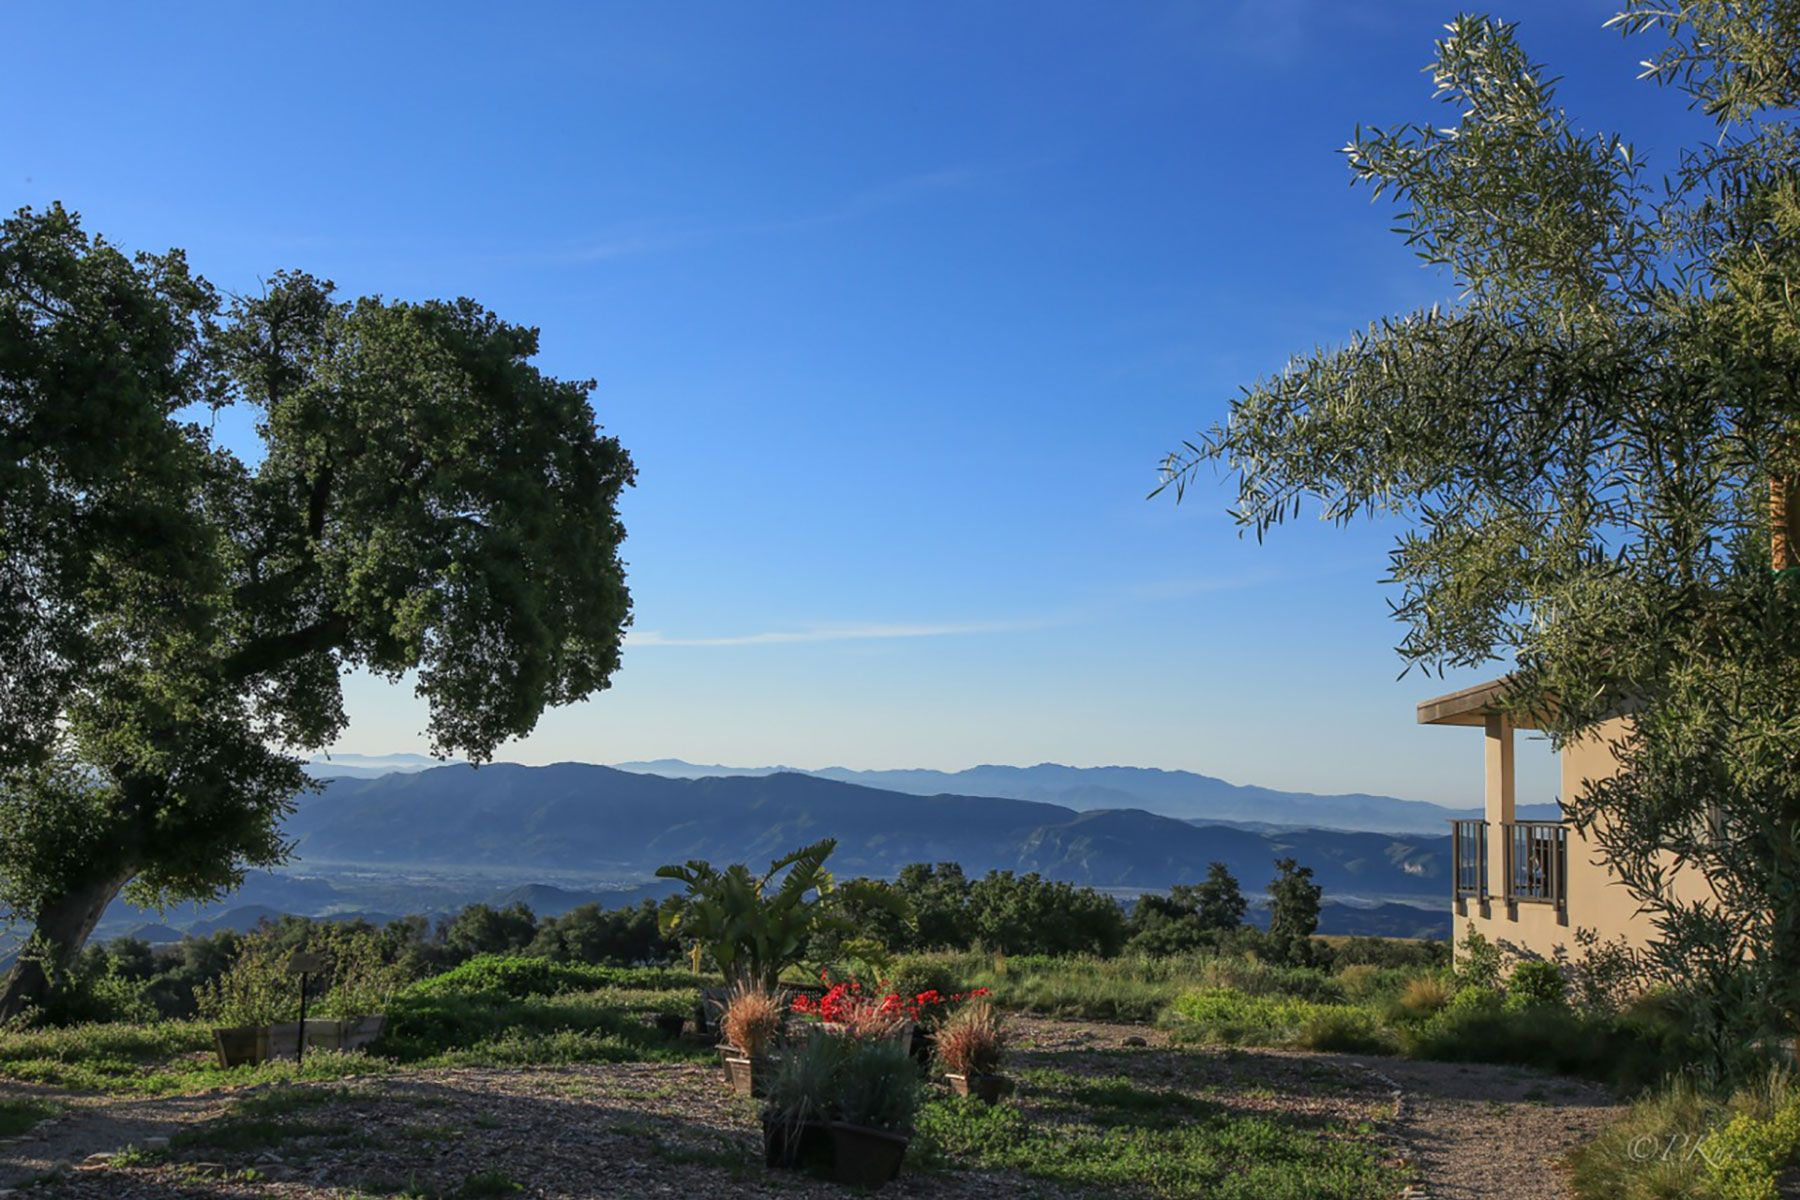 Single Family Home for Sale at 13500 Sulphur Mountain 13500 Sulphur Mountain Ojai, California 93023 United States